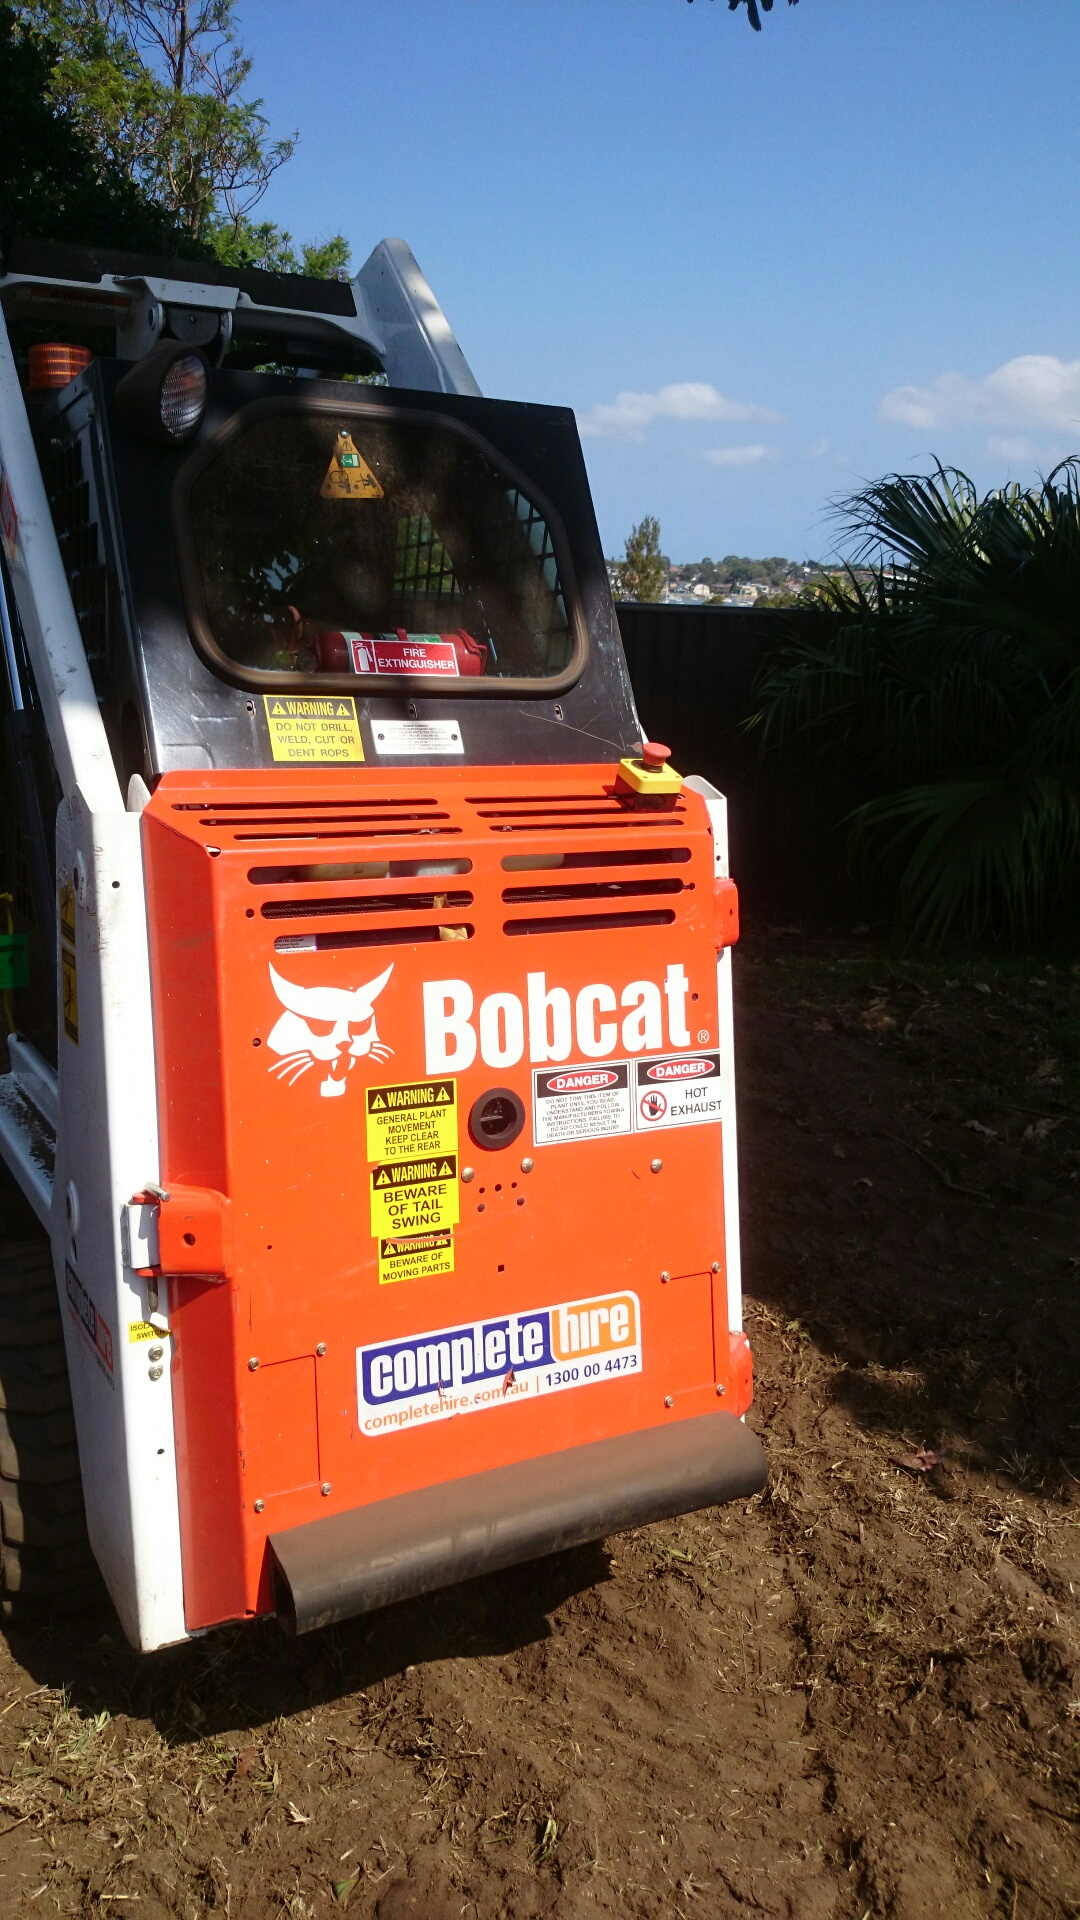 s70 Bobcat by Greenwest